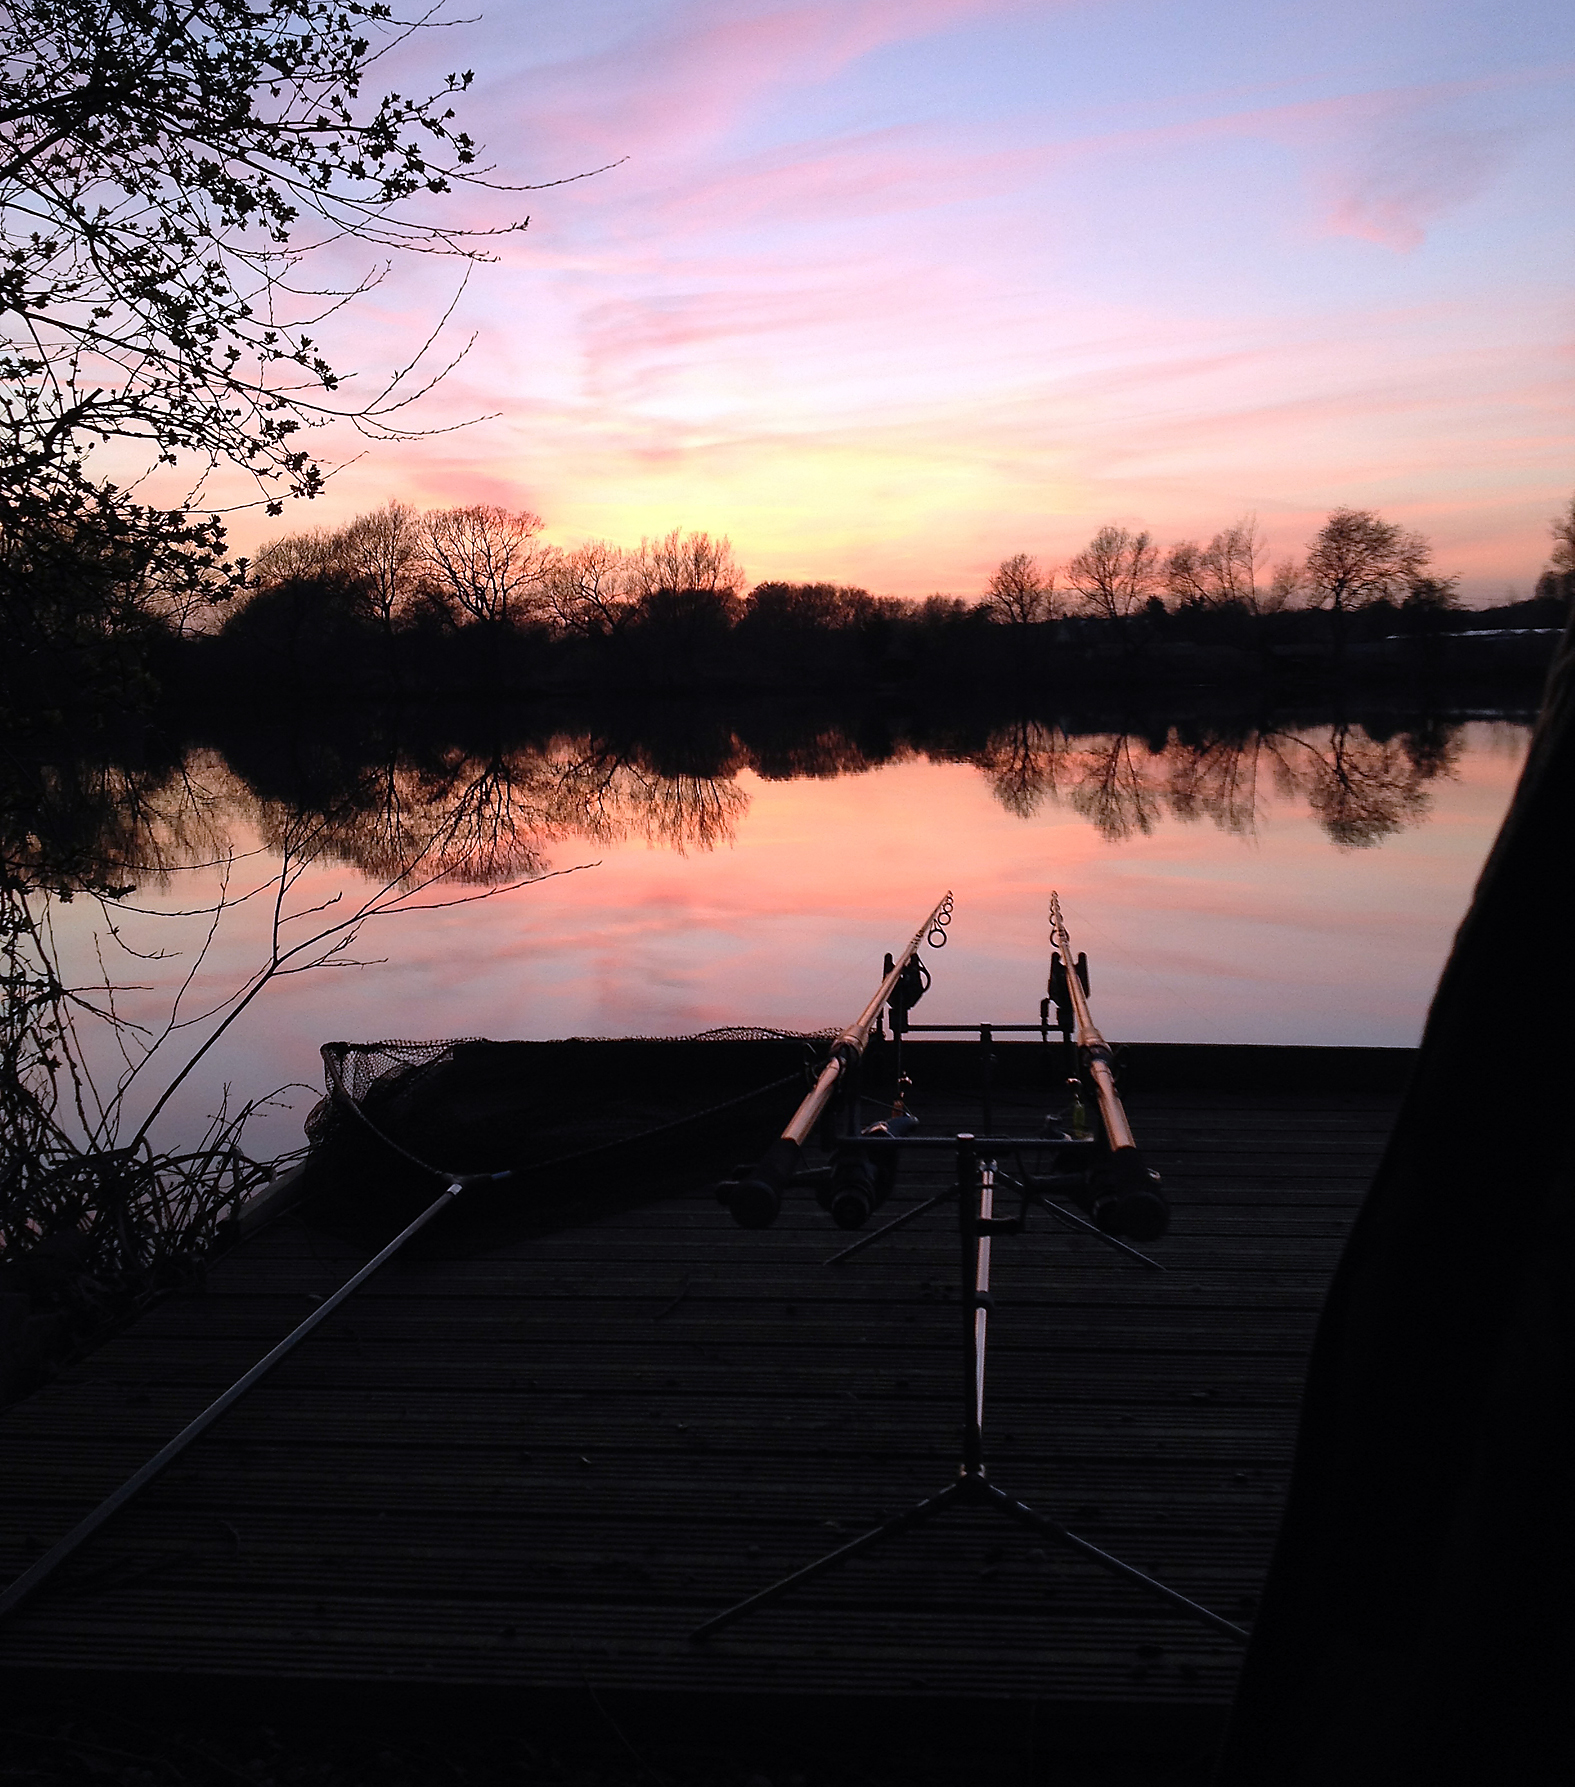 Lovely view, but where are the carp?